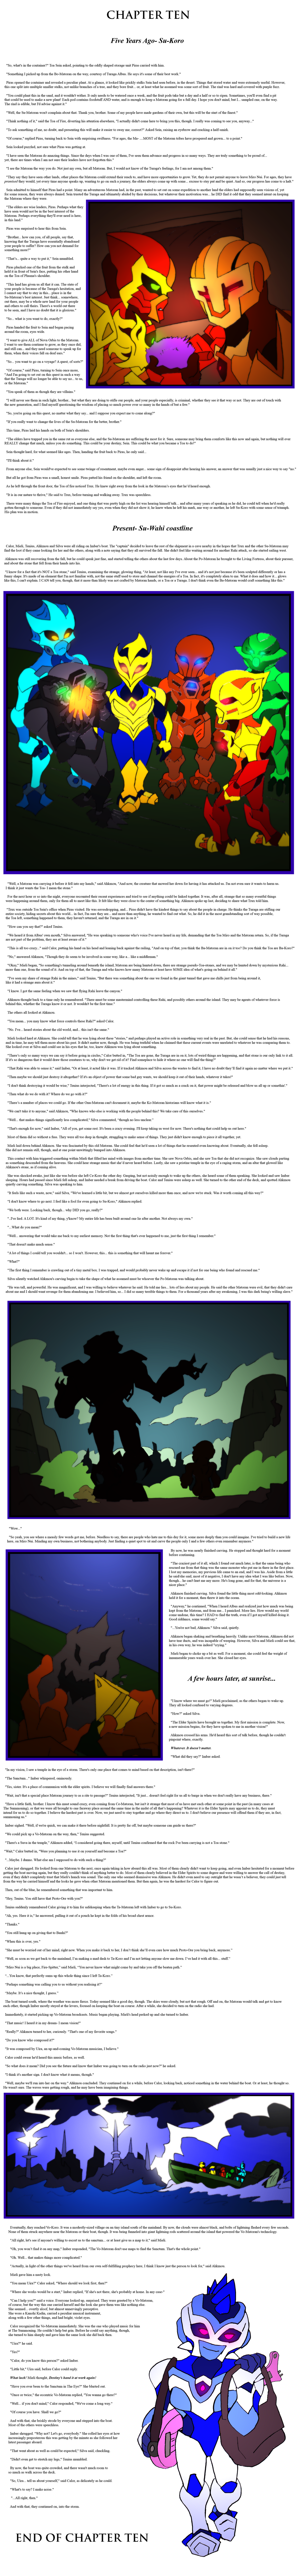 Bionicle Nova Orbis Mystery Chapter 10